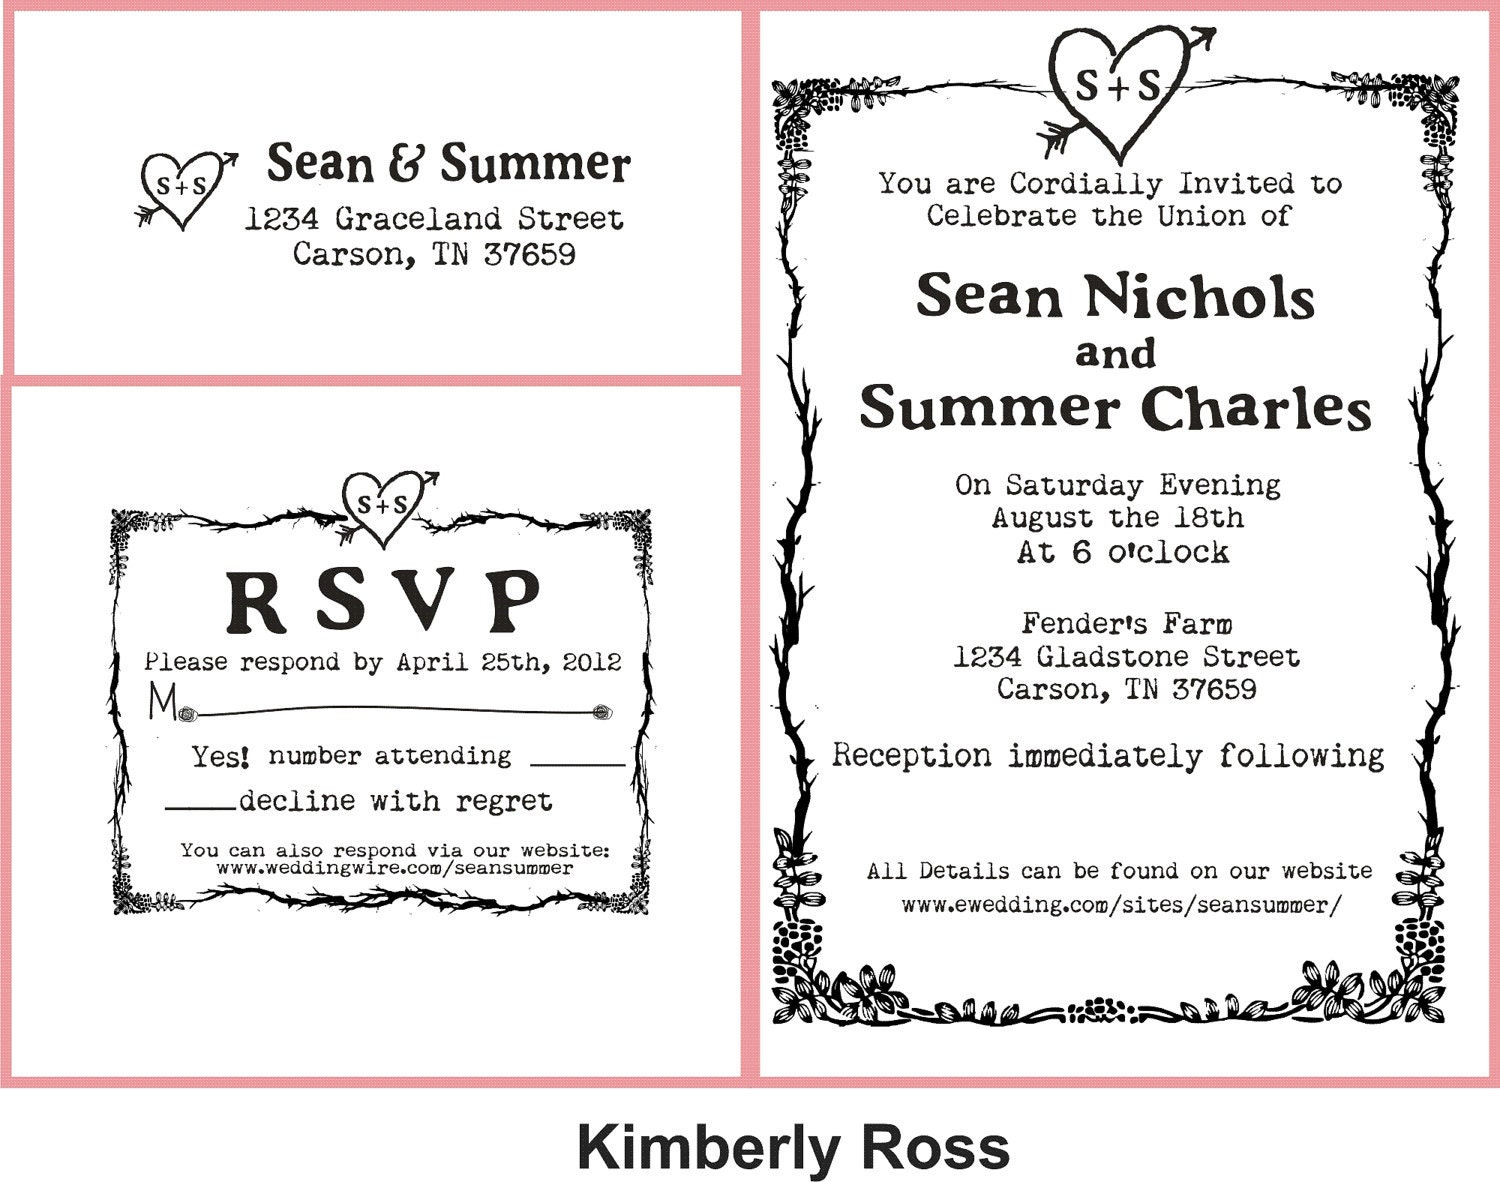 Stamps For Wedding Invitations: Wedding Invitation Rubber Stamp With Typewriter Font And